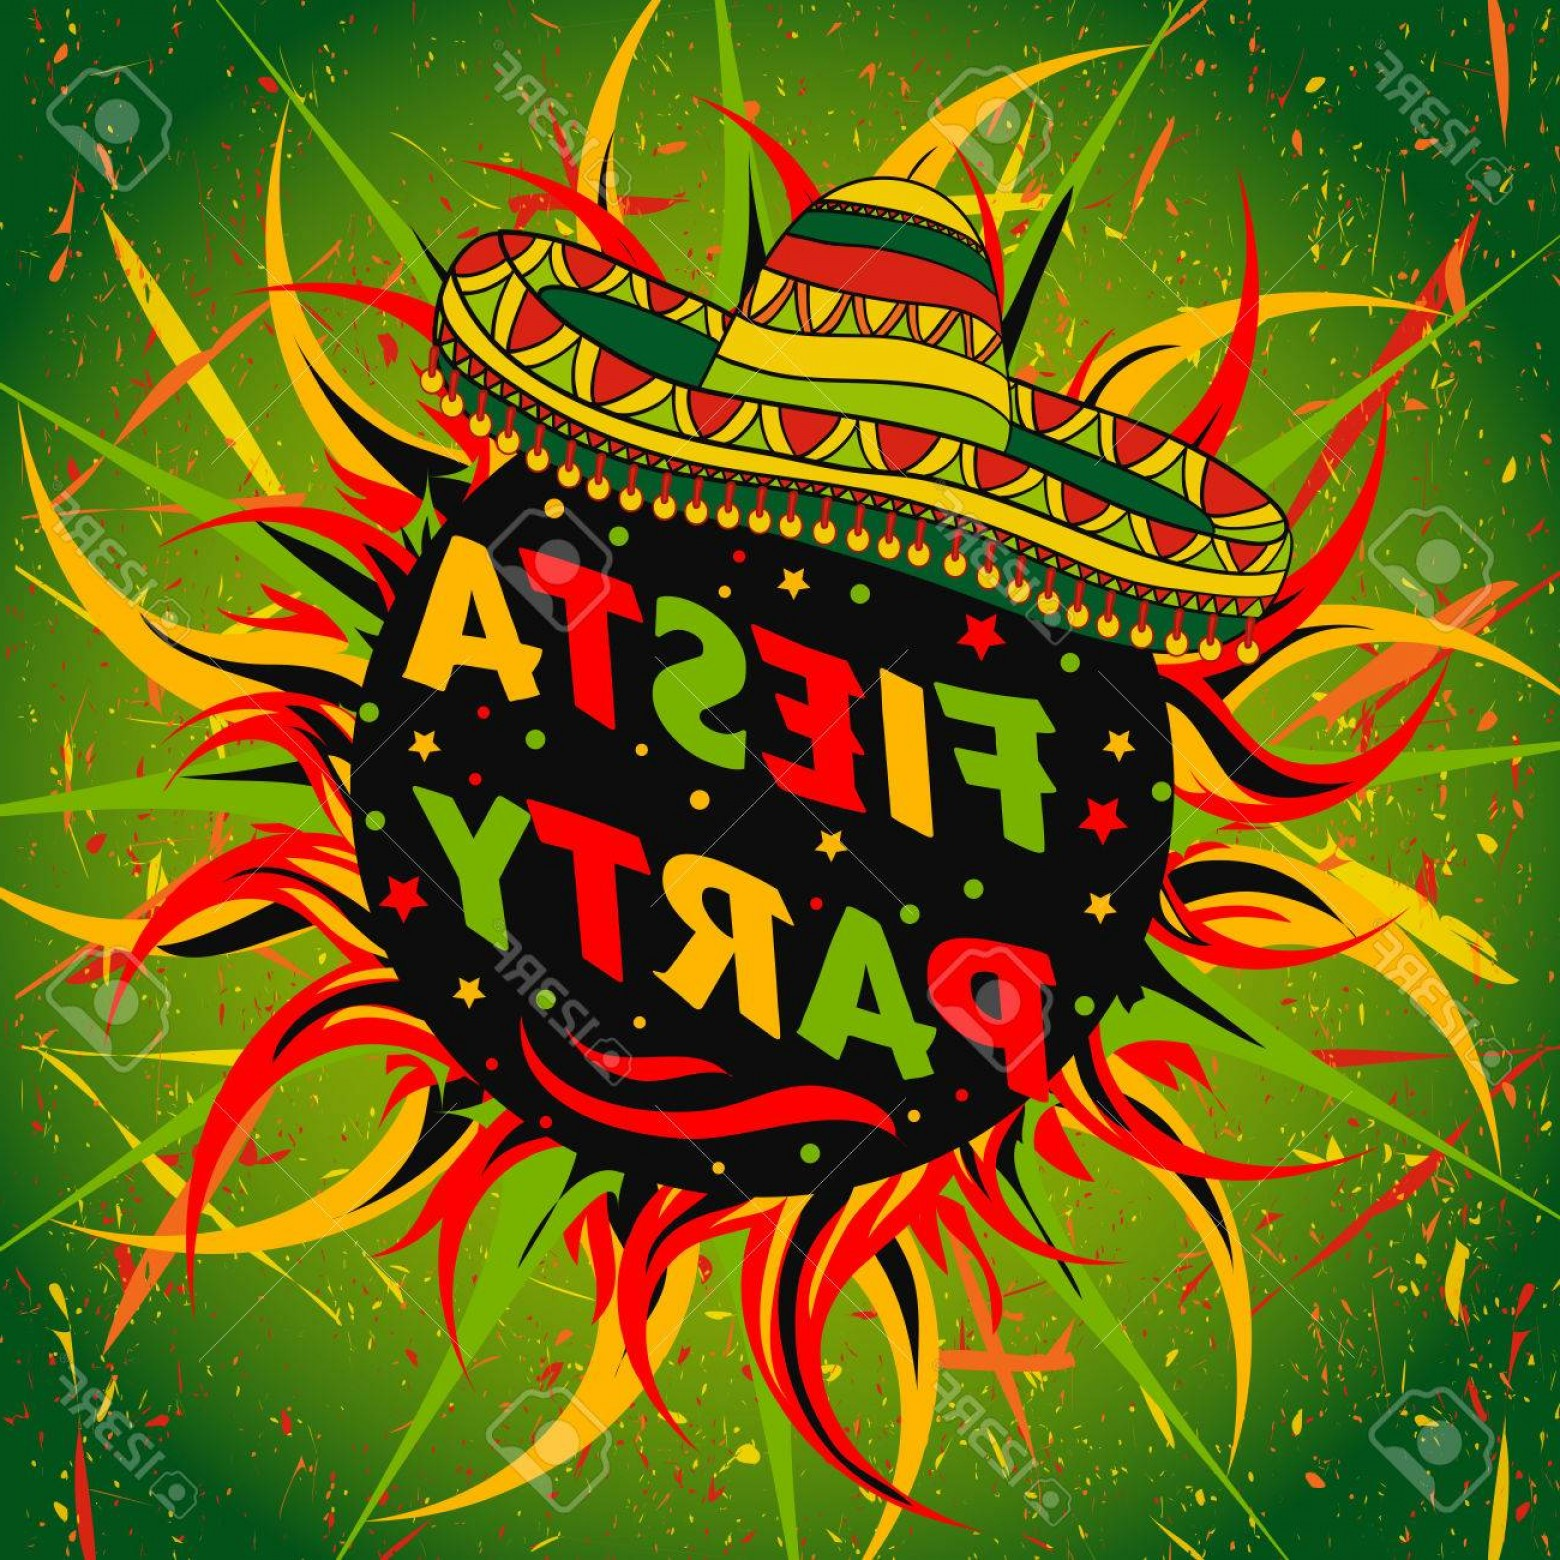 Fiesta Mexico Vector: Photostock Vector Mexican Fiesta Party Label With Sombrero And Confetti Hand Drawn Illustration Poster With Grunge Bac